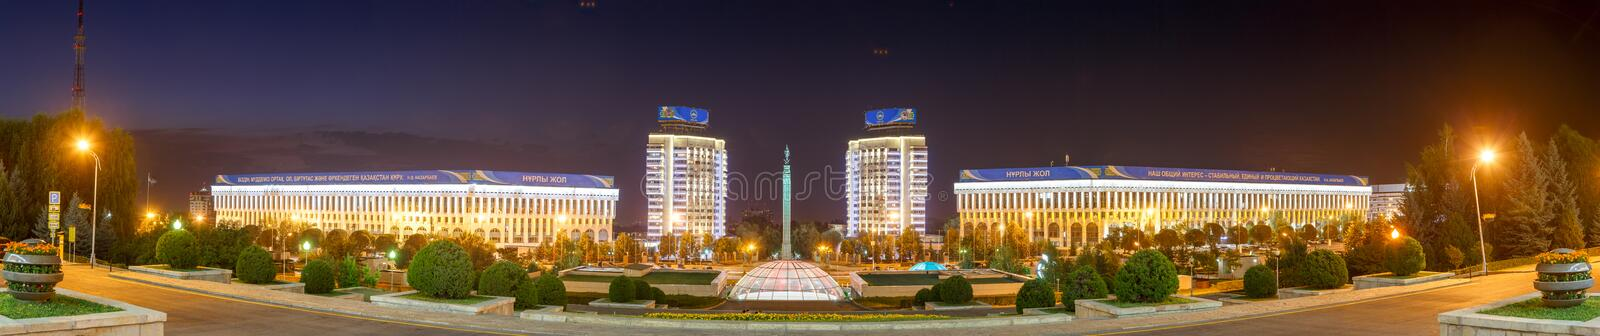 Almaty, Kazakhstan - August 29, 2016: Kazakhstan`s Independence. Monument - a monument on the central square Republic Square, Alma-Ata. Night Panorama royalty free stock photos